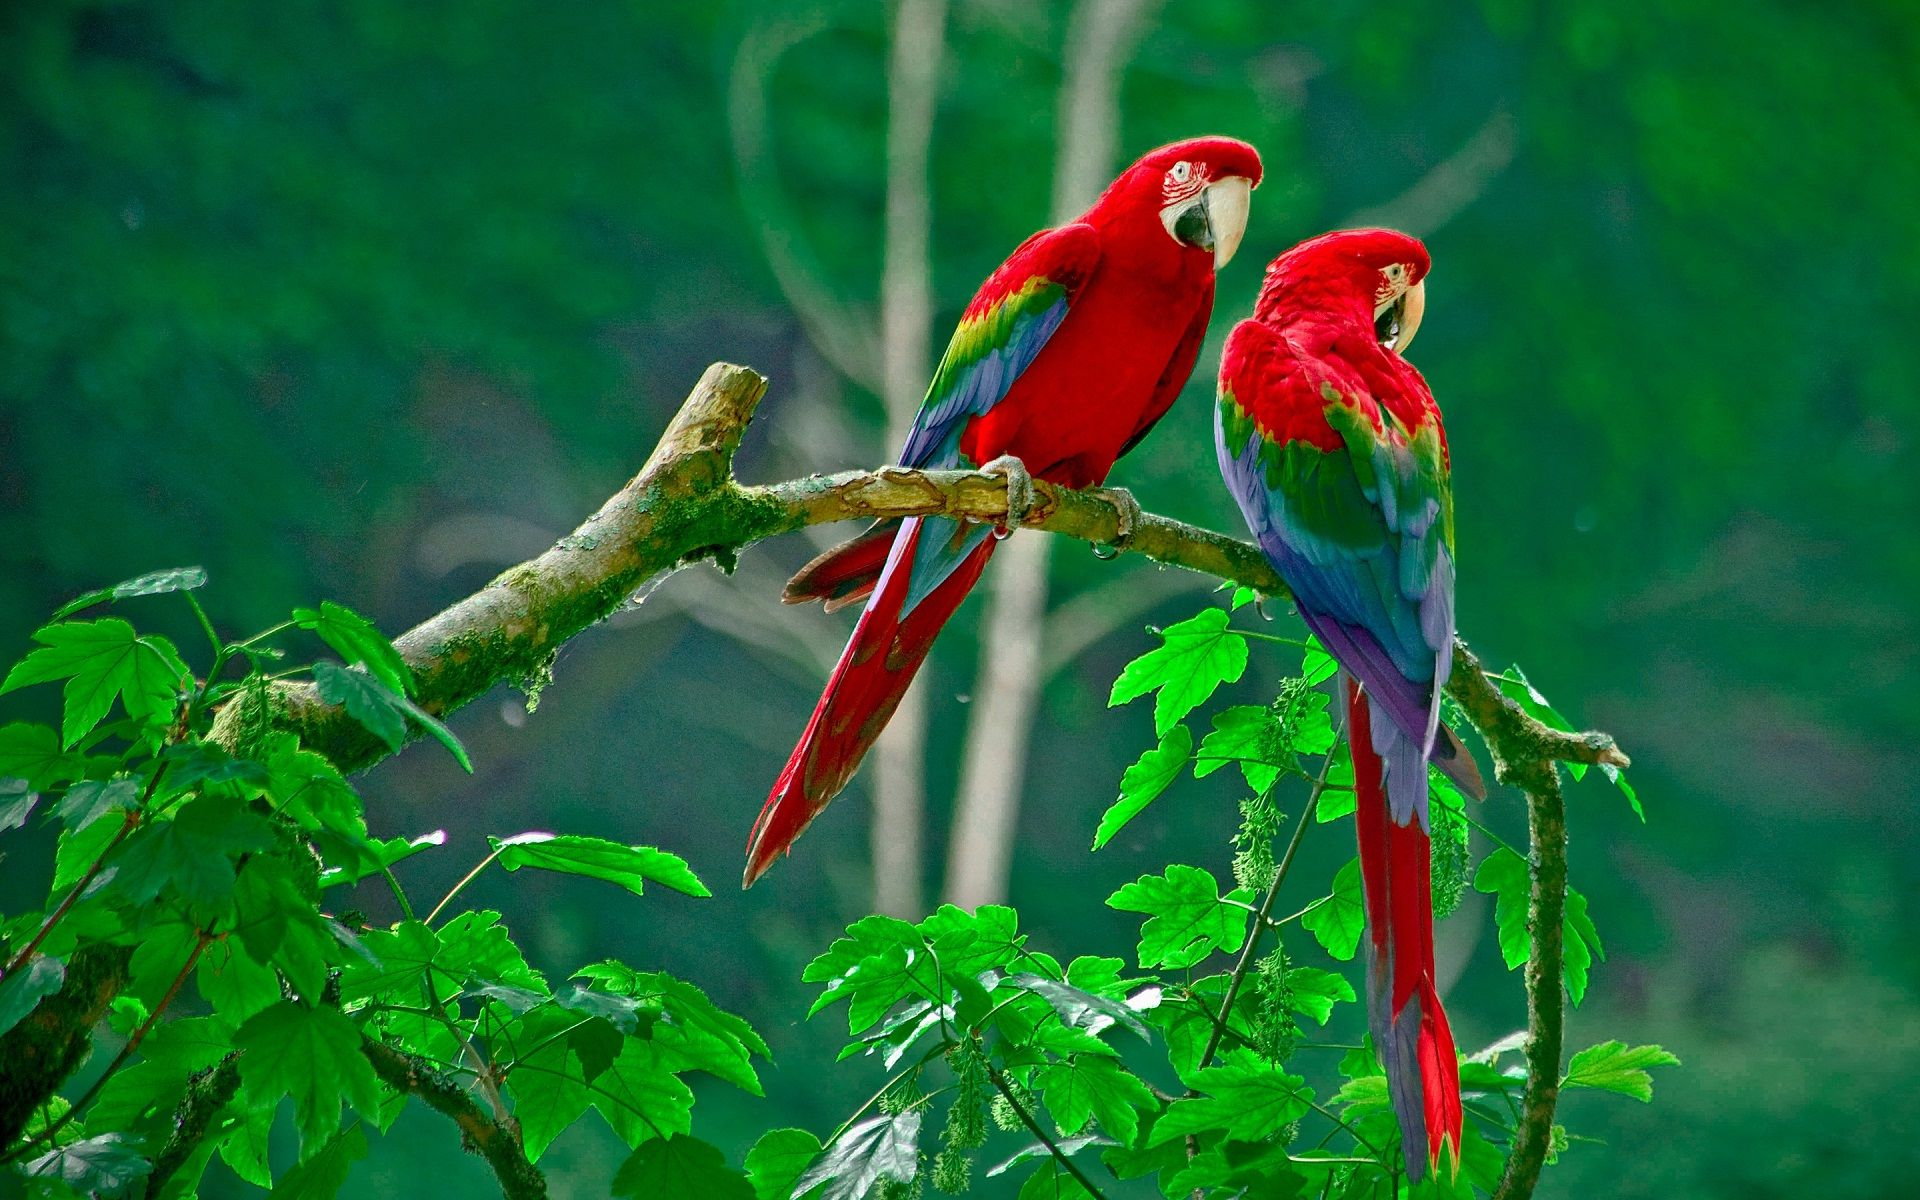 53 Best Love Hd Wallpapers Images On Pinterest: Love Birds HD Images 5 #LoveBirdsHDImages #LoveBirds